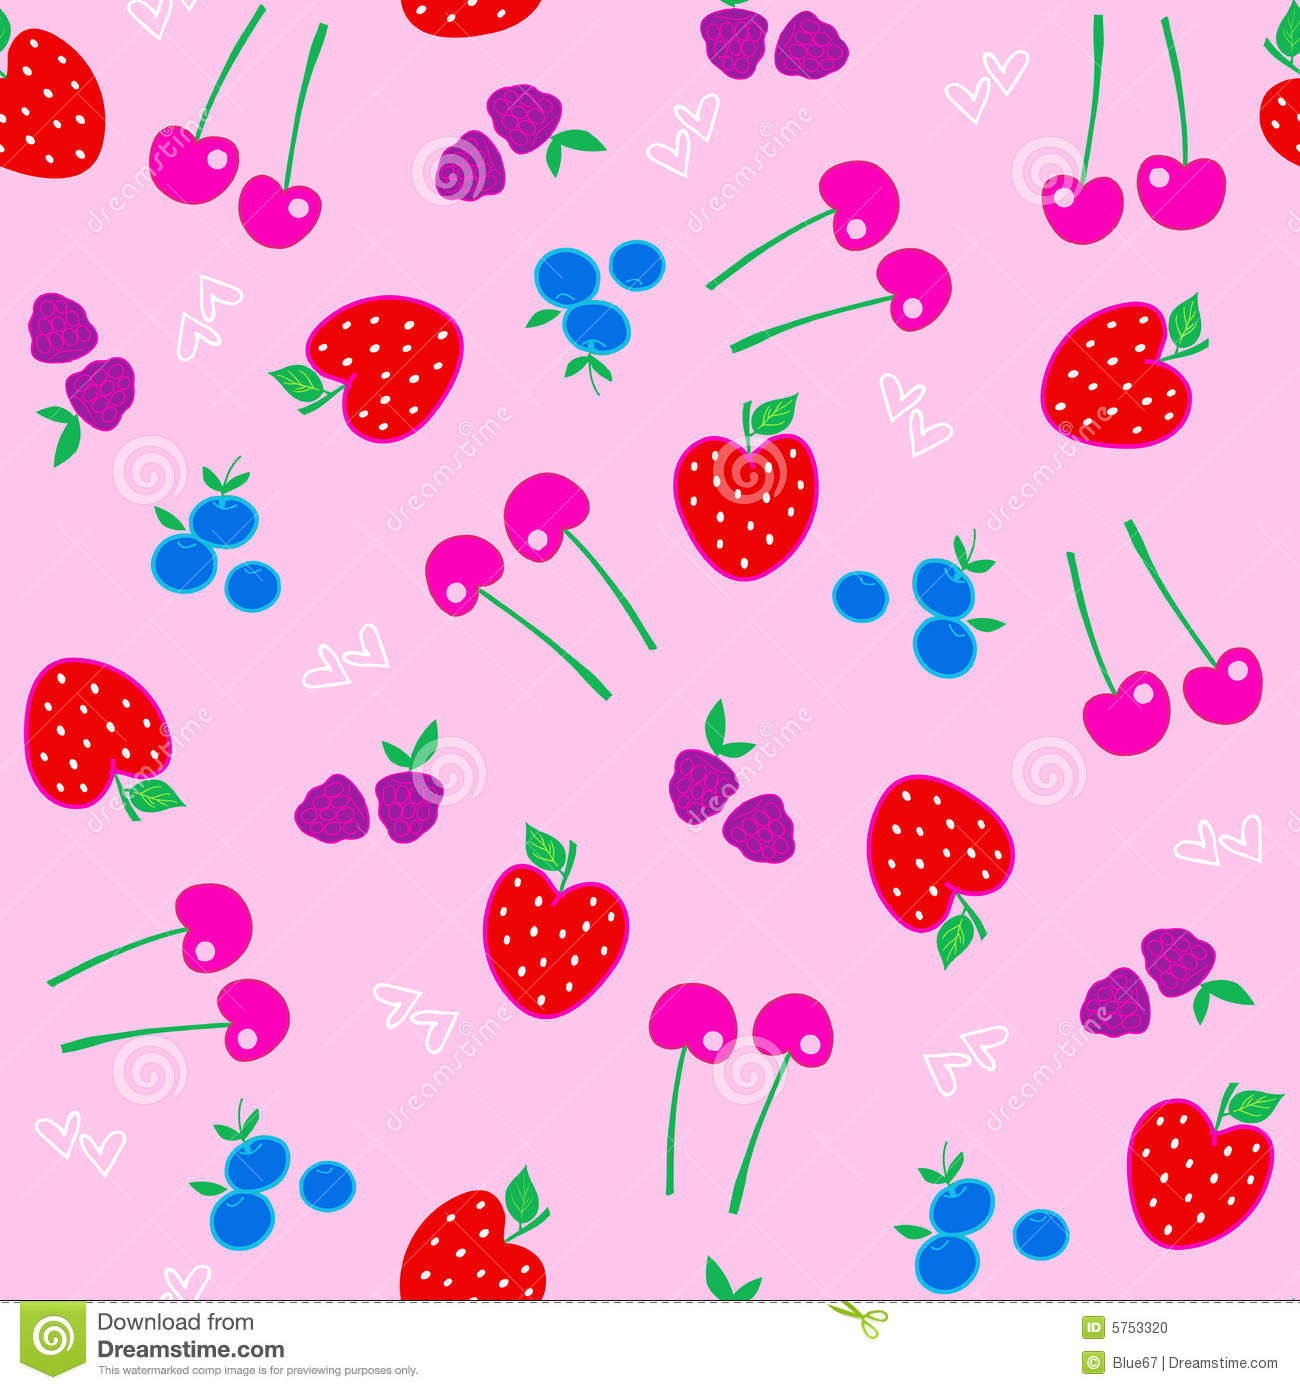 Berries Fruit Seamless Repeat Pattern Vector